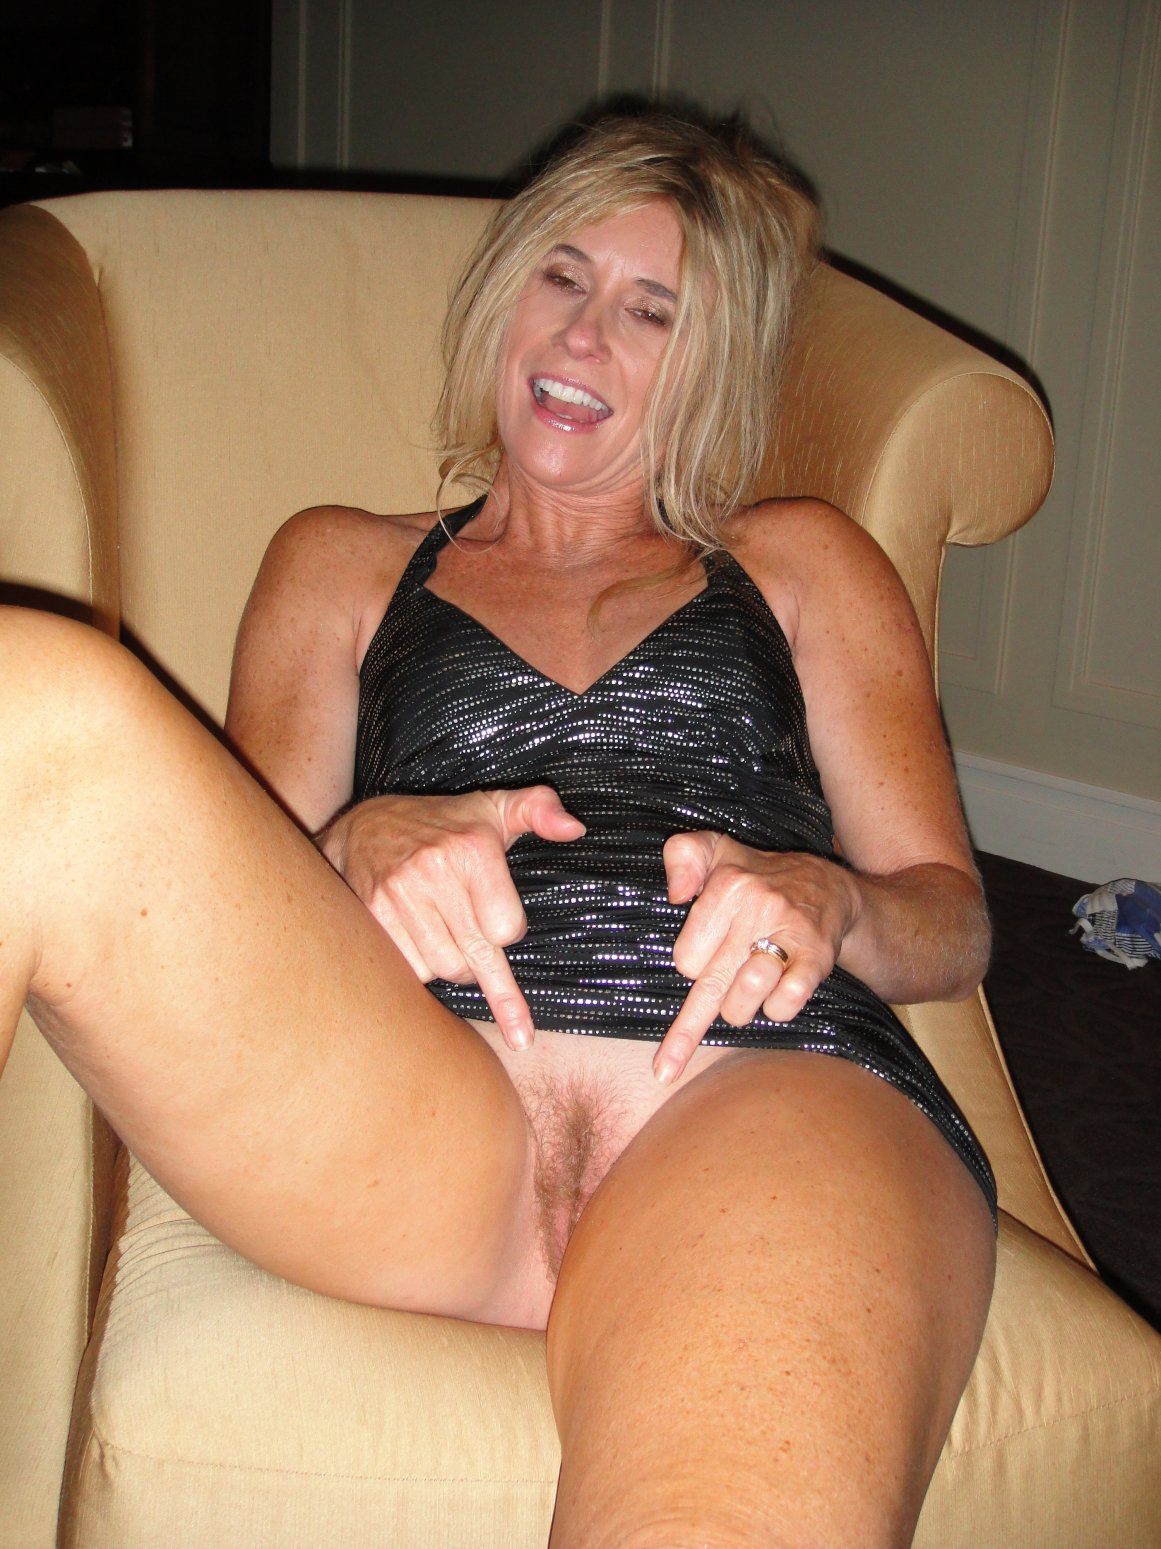 Milf slut wife pictures